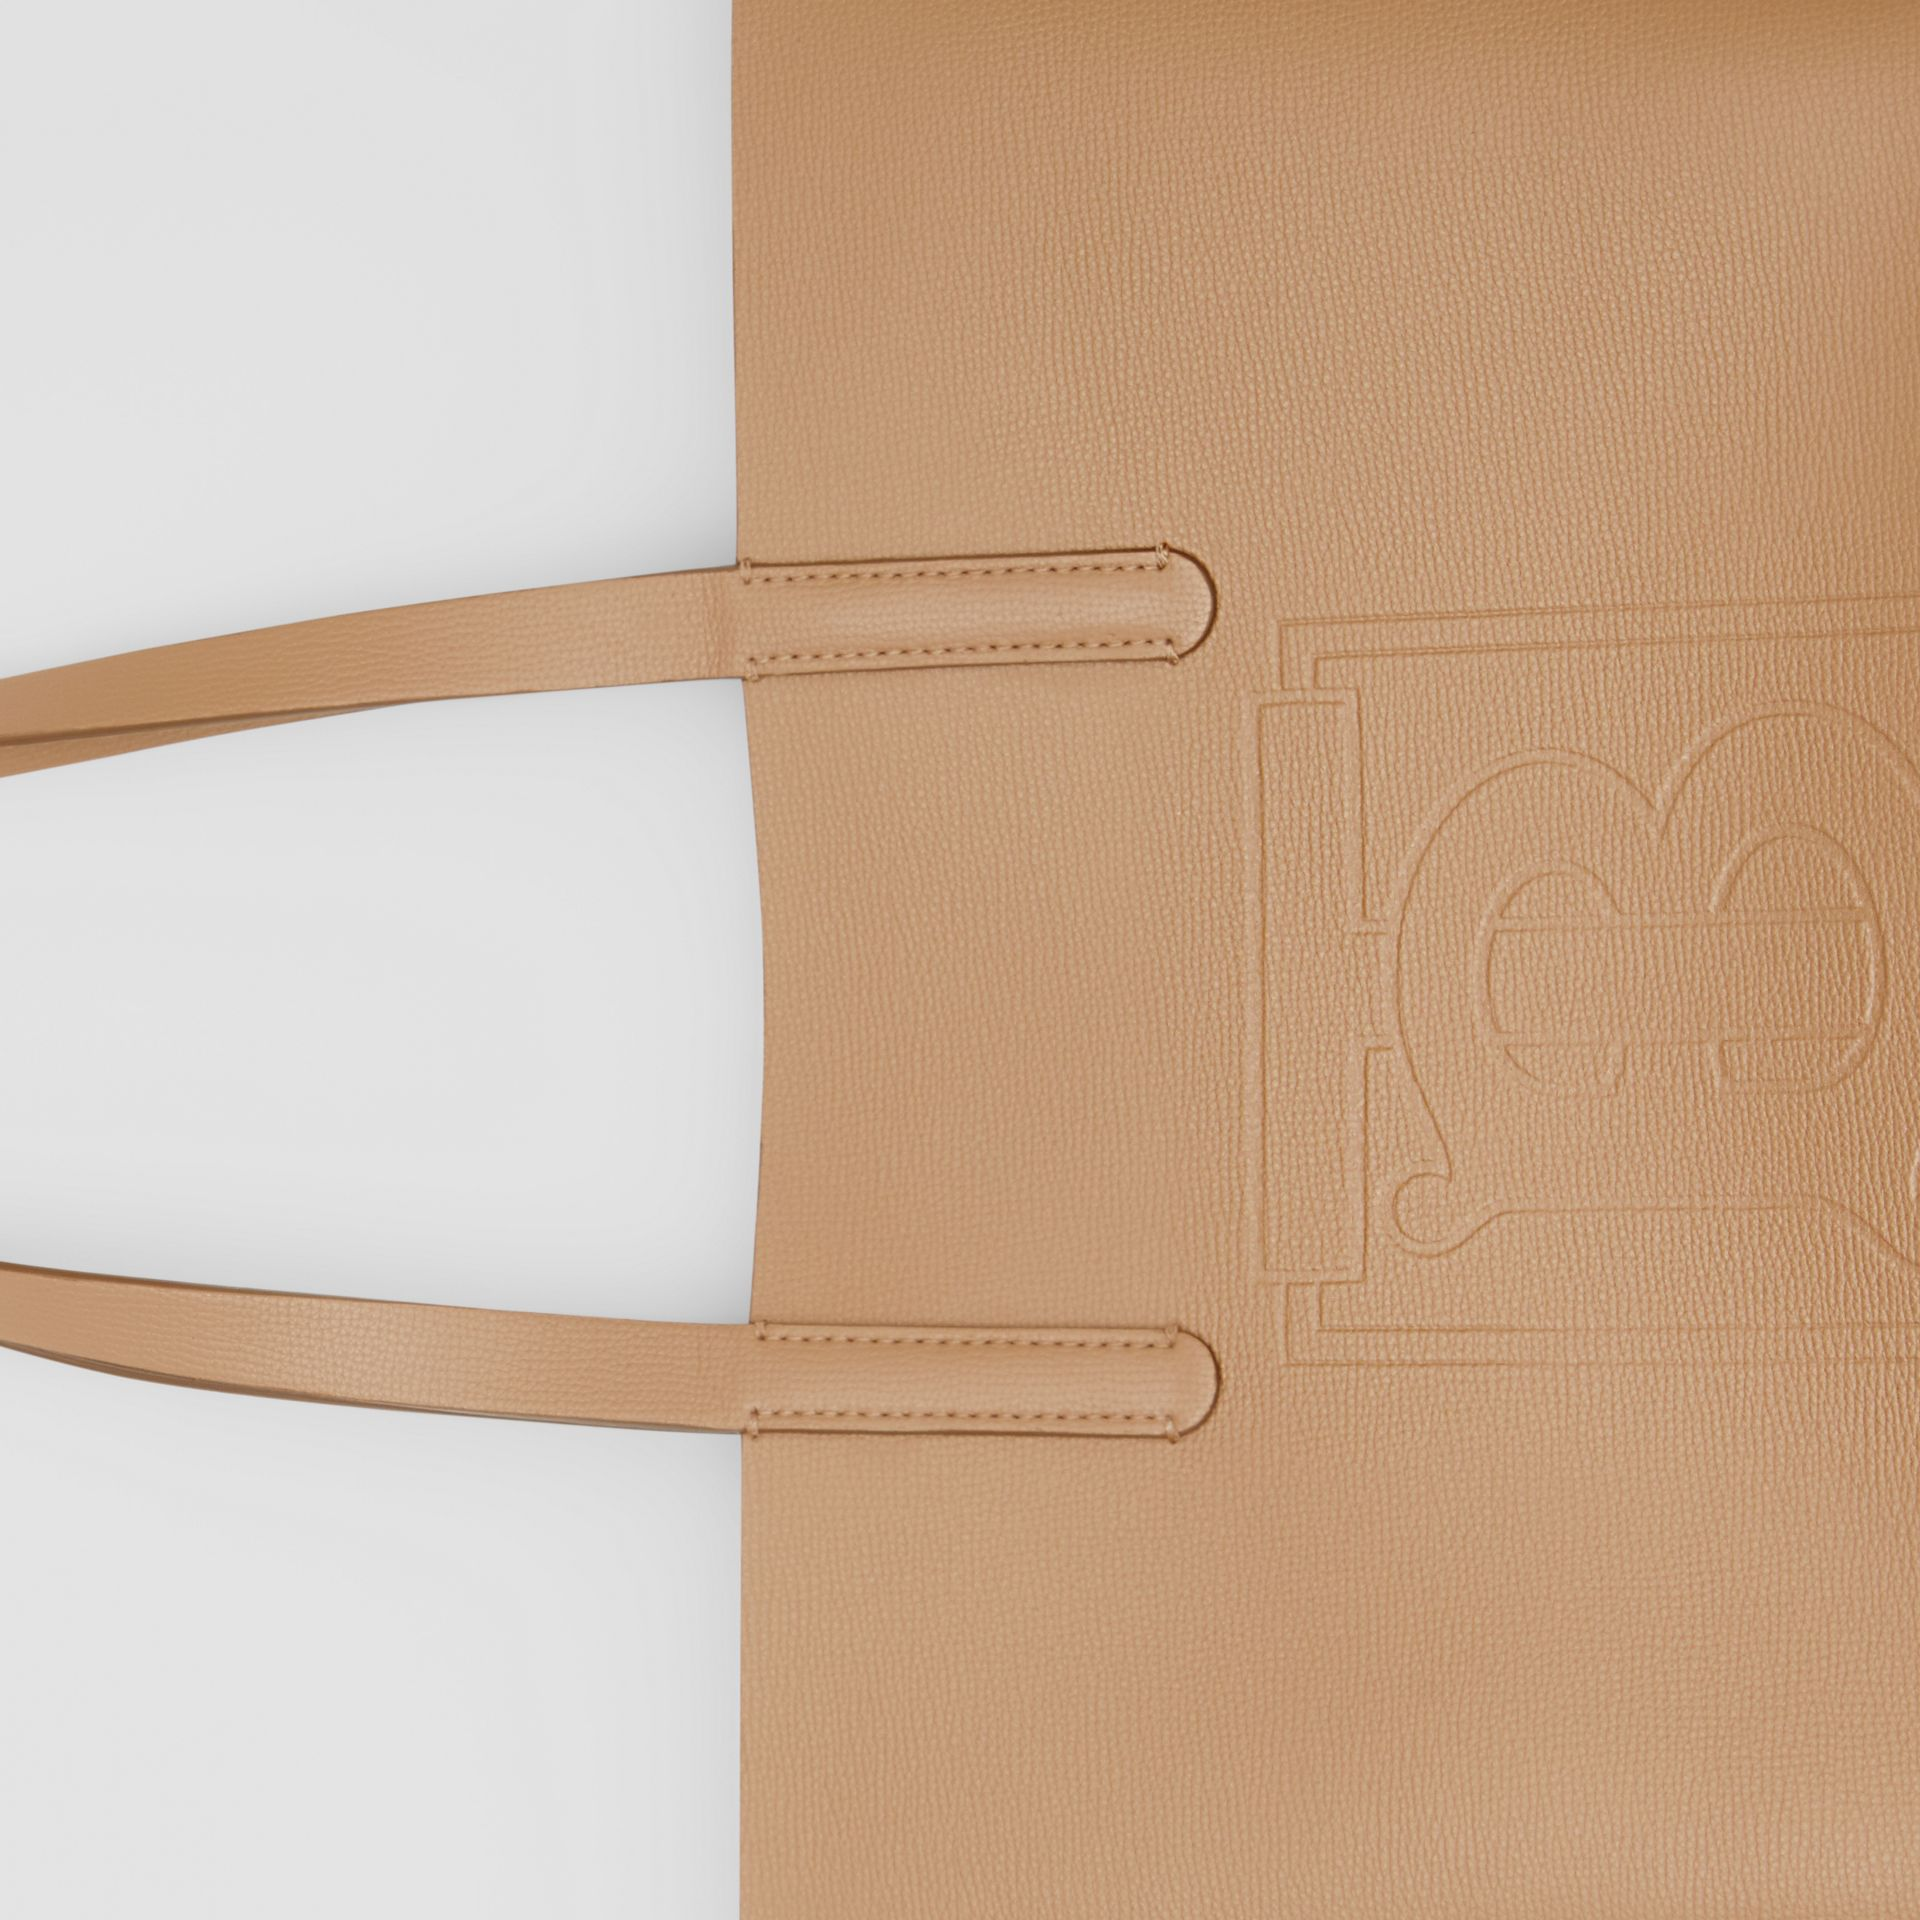 Embossed Monogram Motif Leather Tote in Camel - Women | Burberry United Kingdom - gallery image 1